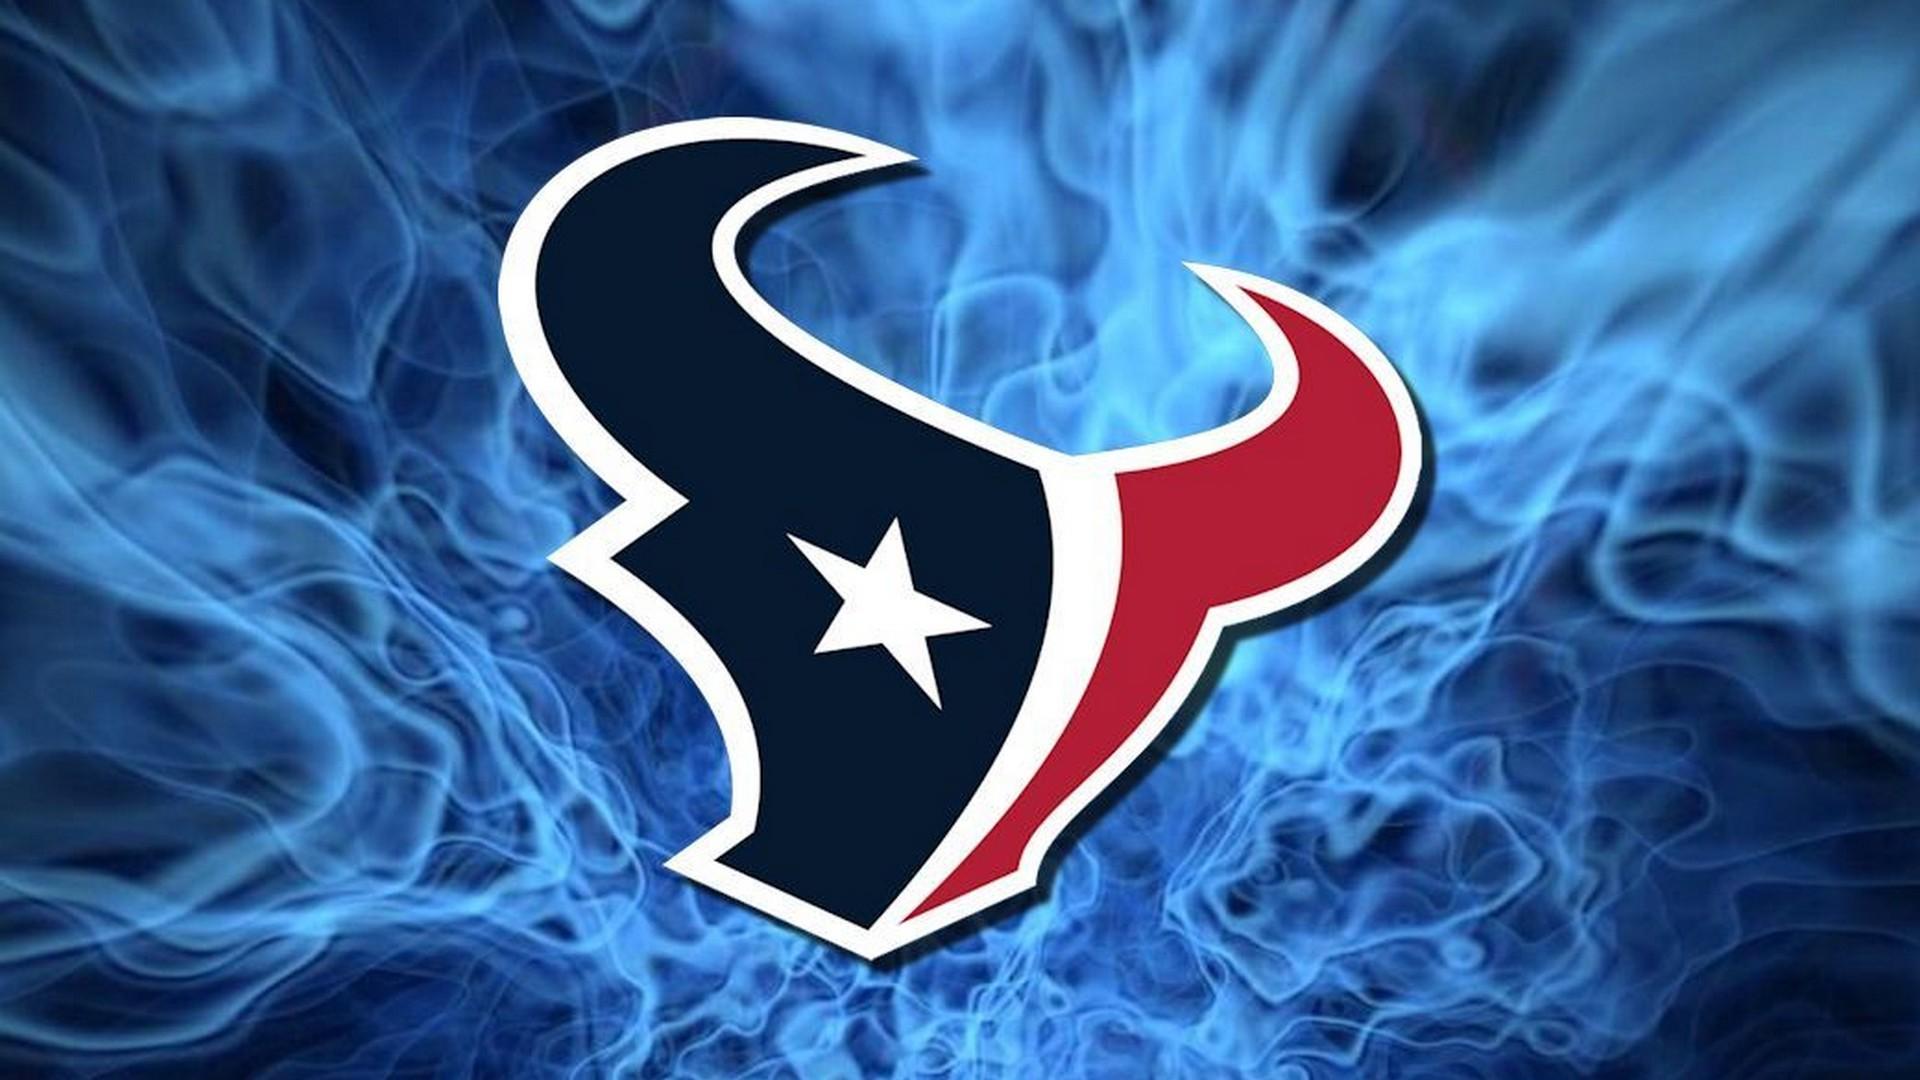 1920x1080 Houston Texans NFL For PC Wallpaper with resolution  pixel. You  can make this wallpaper